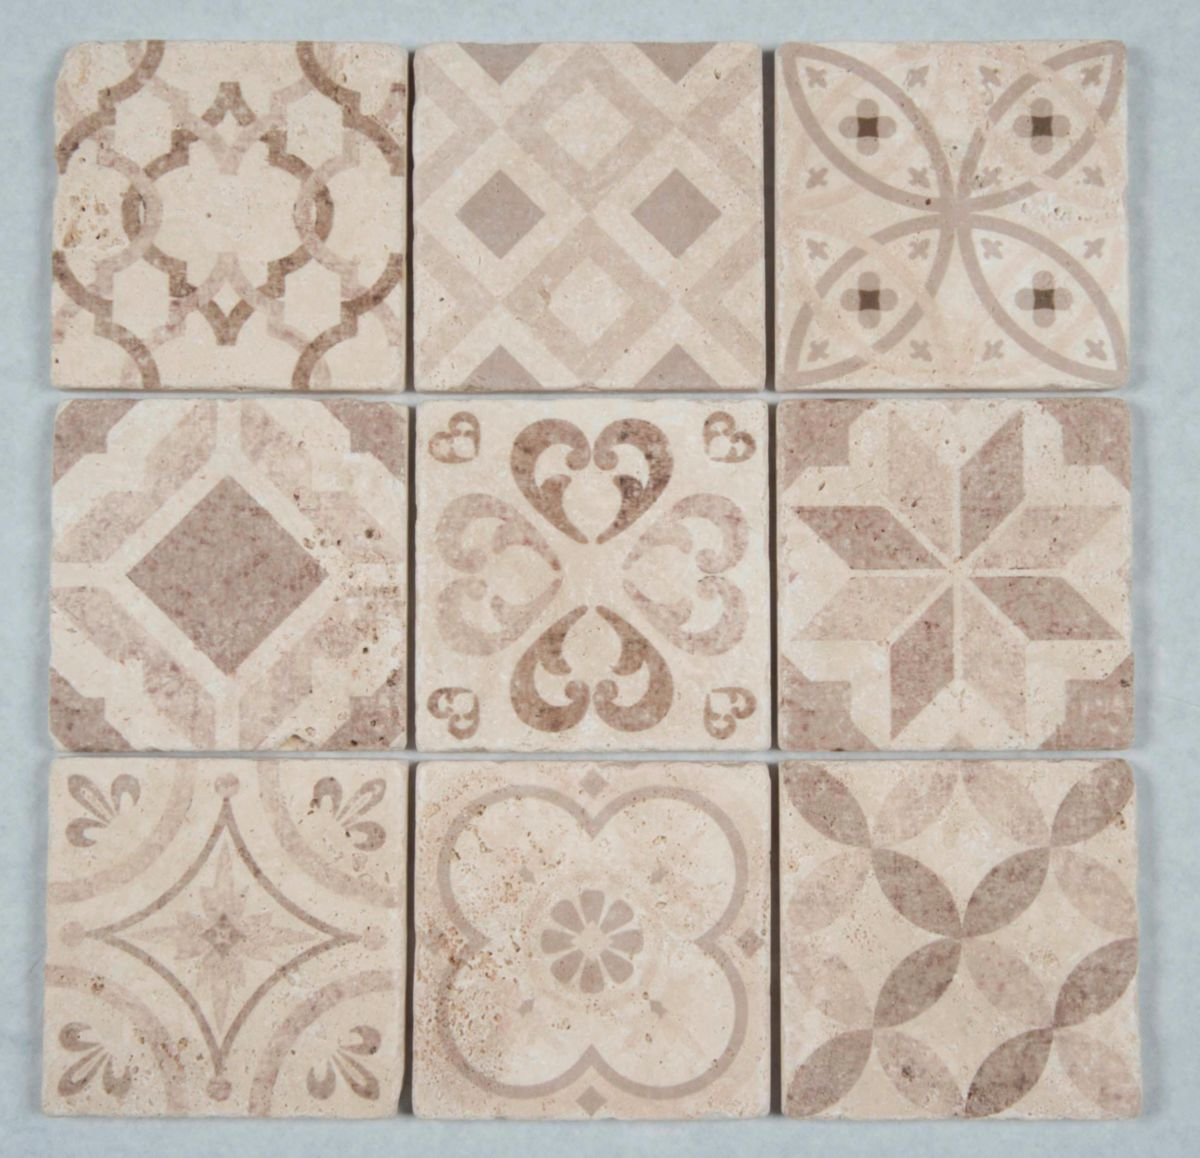 Faience Travertin Carrelage Mural Intérieur Pierre Naturelle Travertin Décor Multicouleurs Carreau 10x10 Cm Lot De 9 Pcs